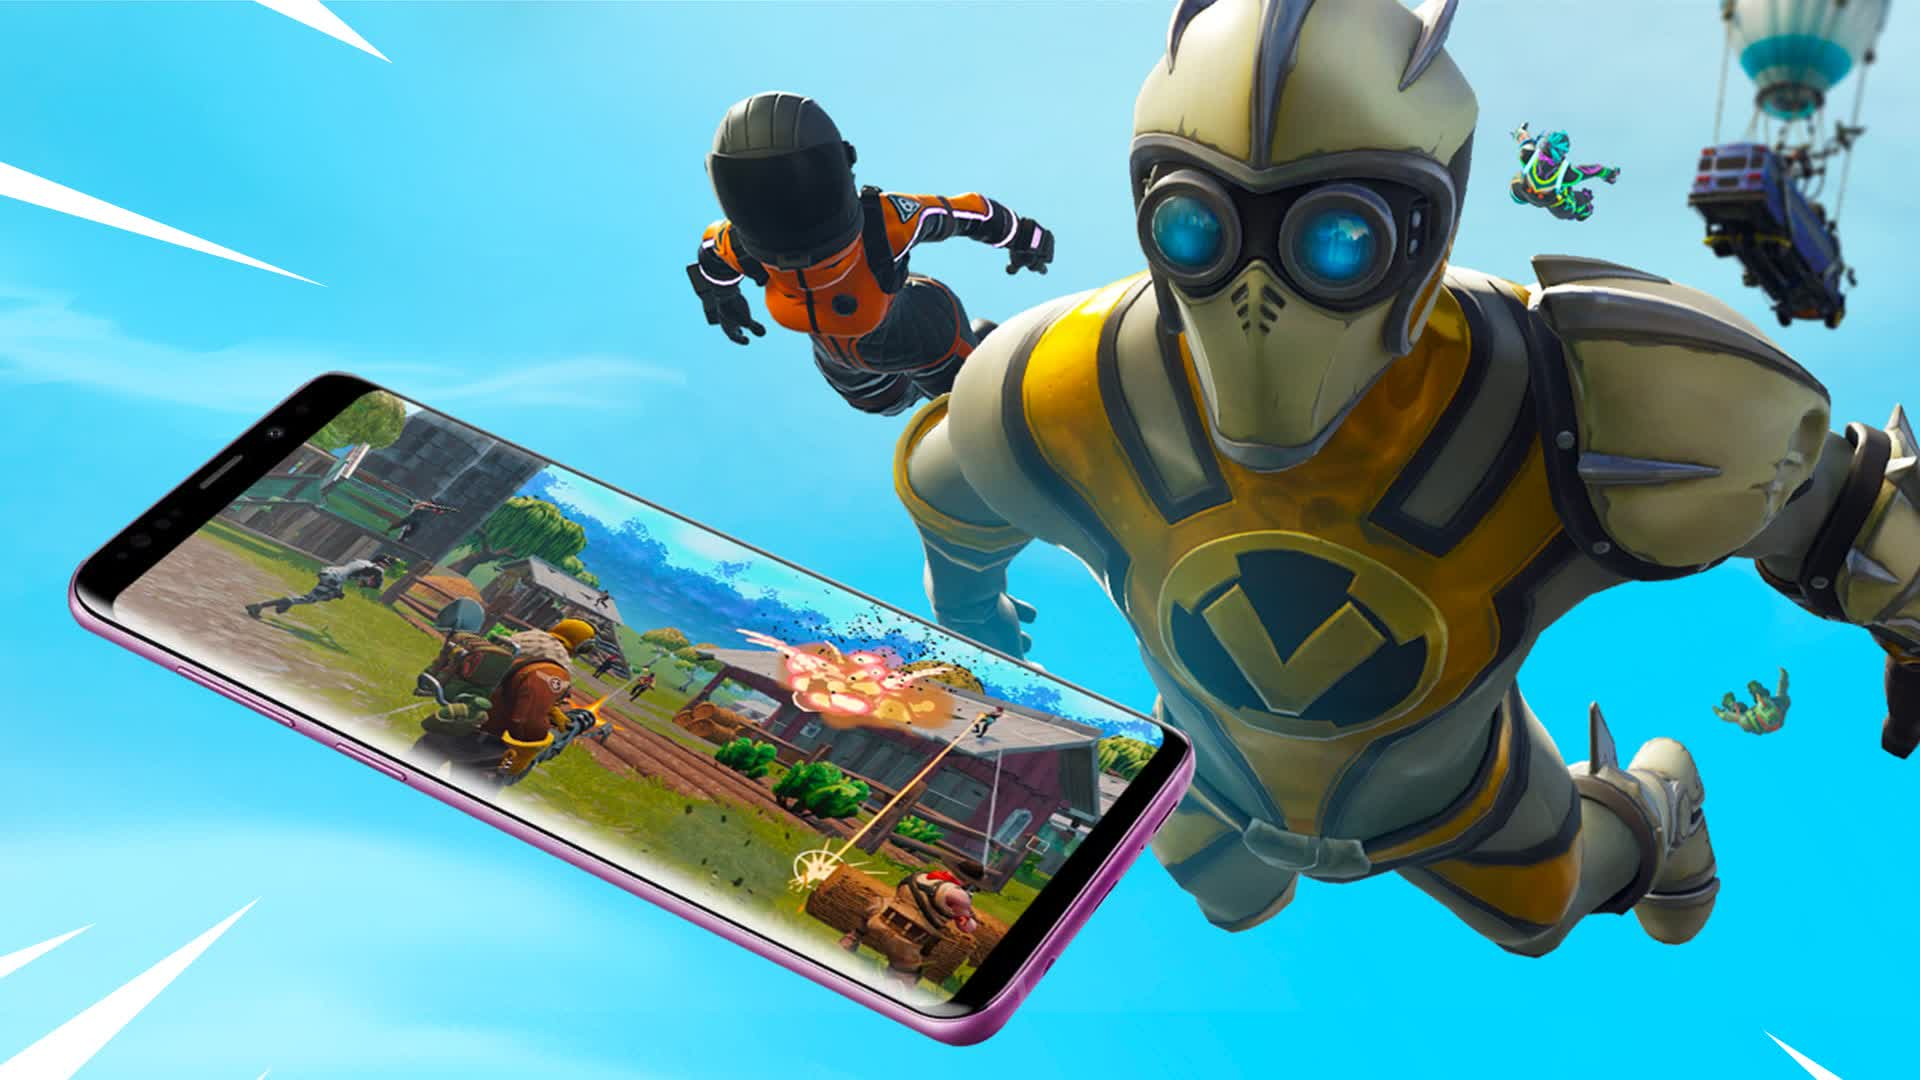 Google considered silencing Epic's antitrust complaints... by buying them